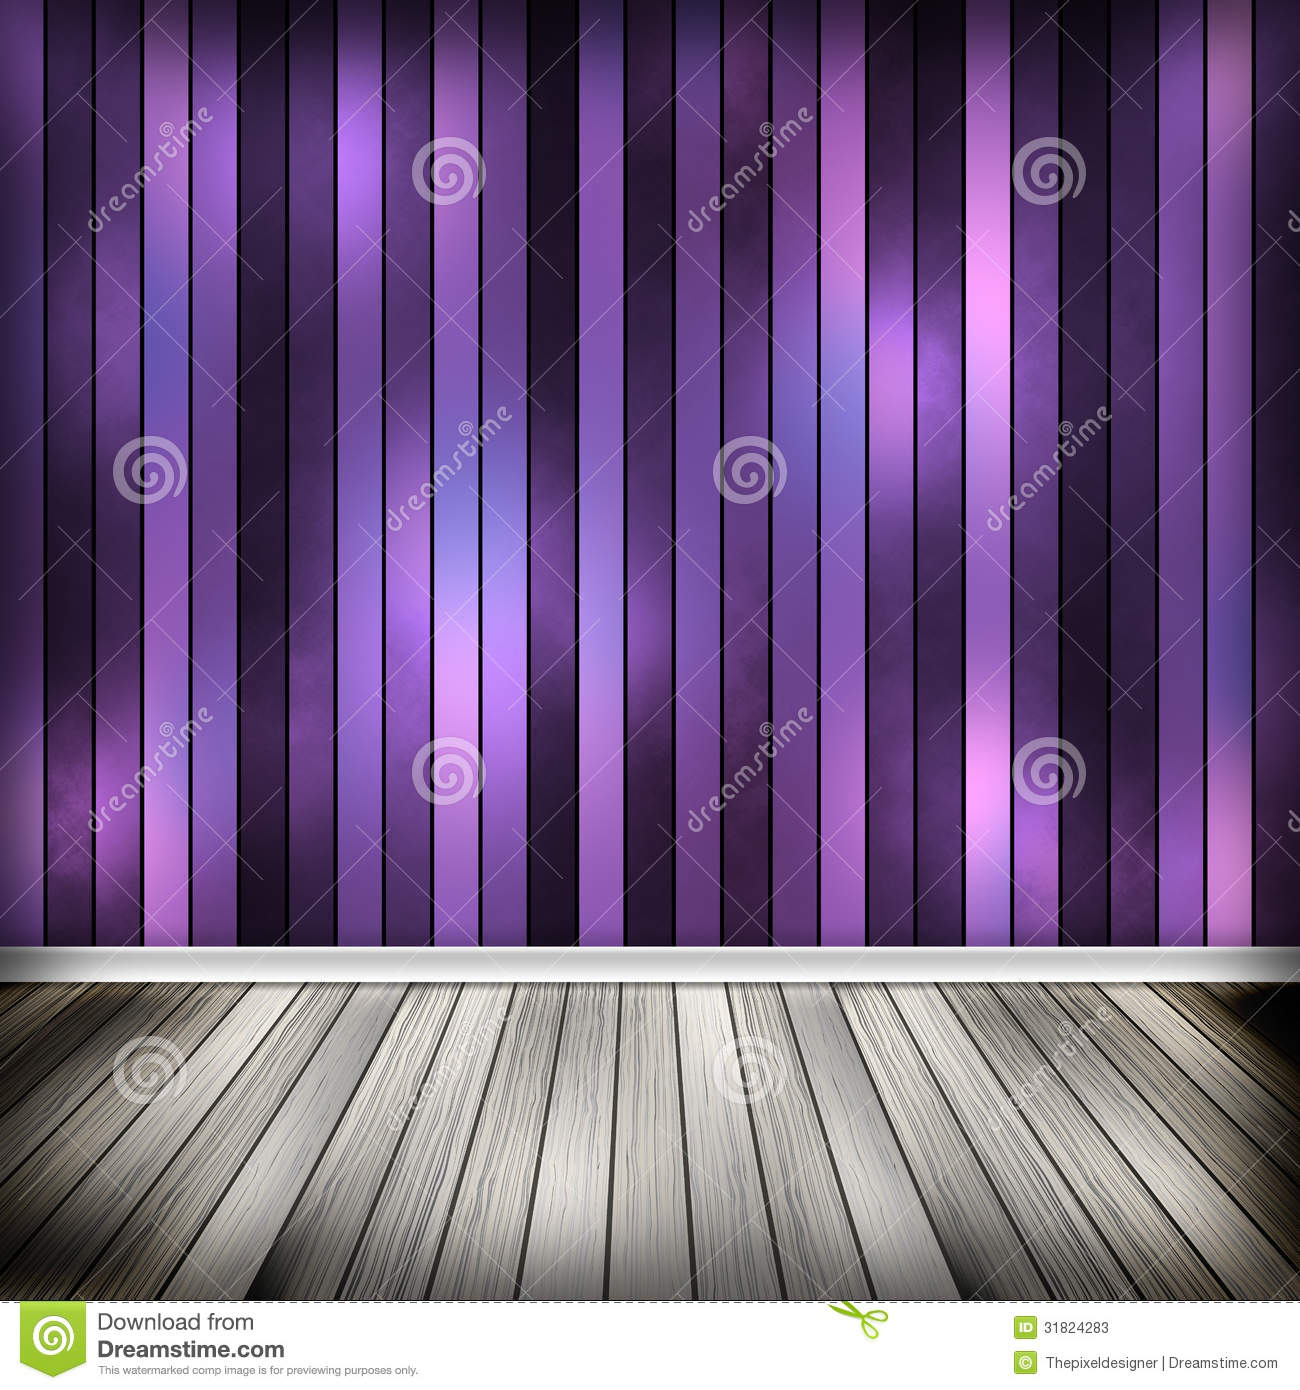 Empty room interior stock photos image 31824283 for High resolution interior images